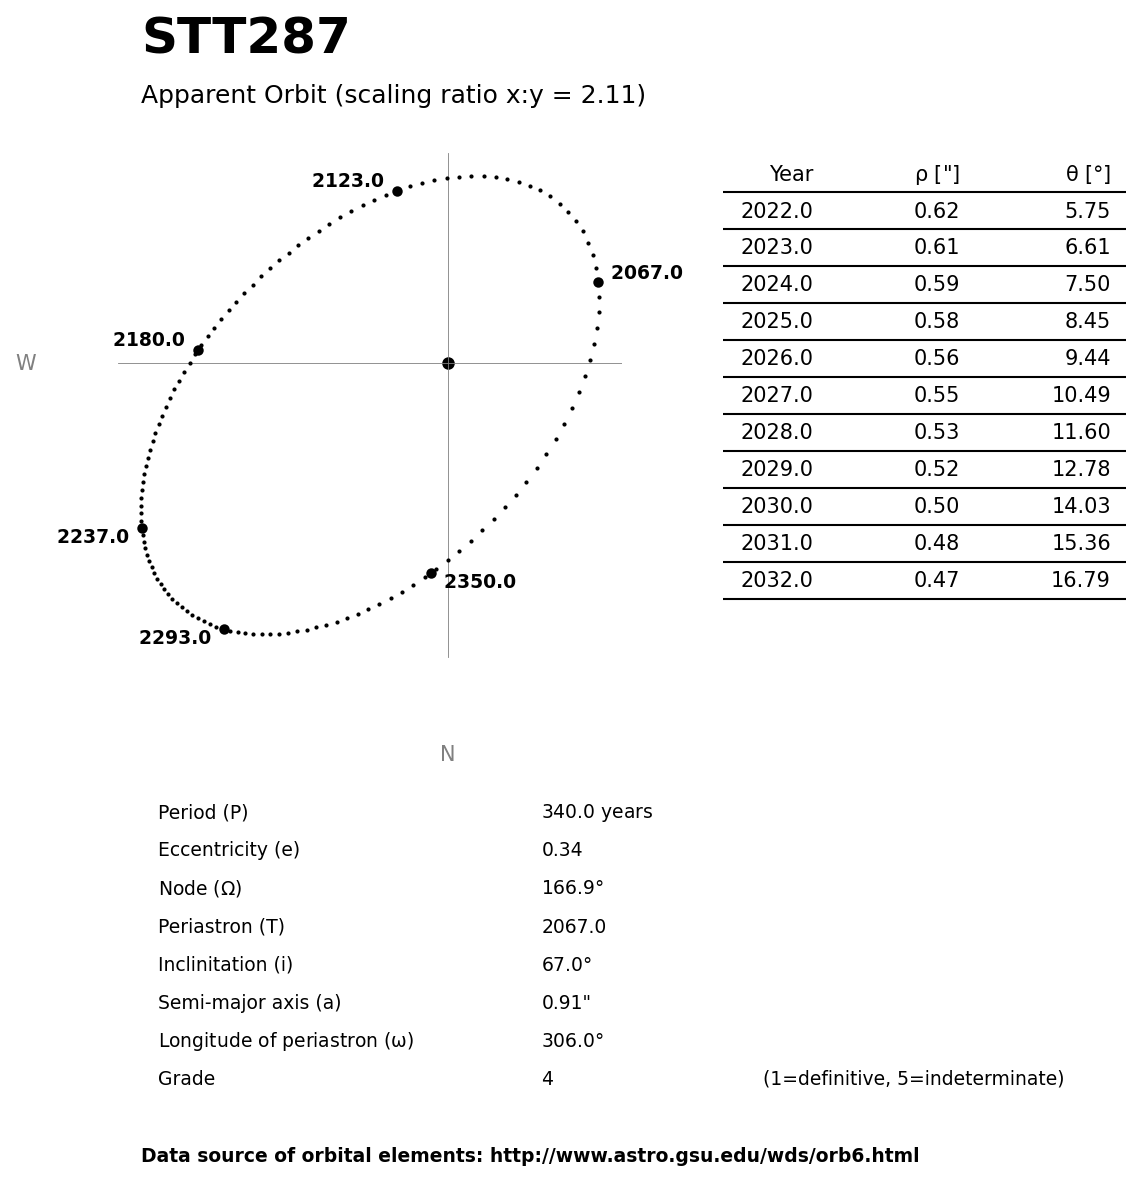 ../images/binary-star-orbits/STT287-orbit.jpg